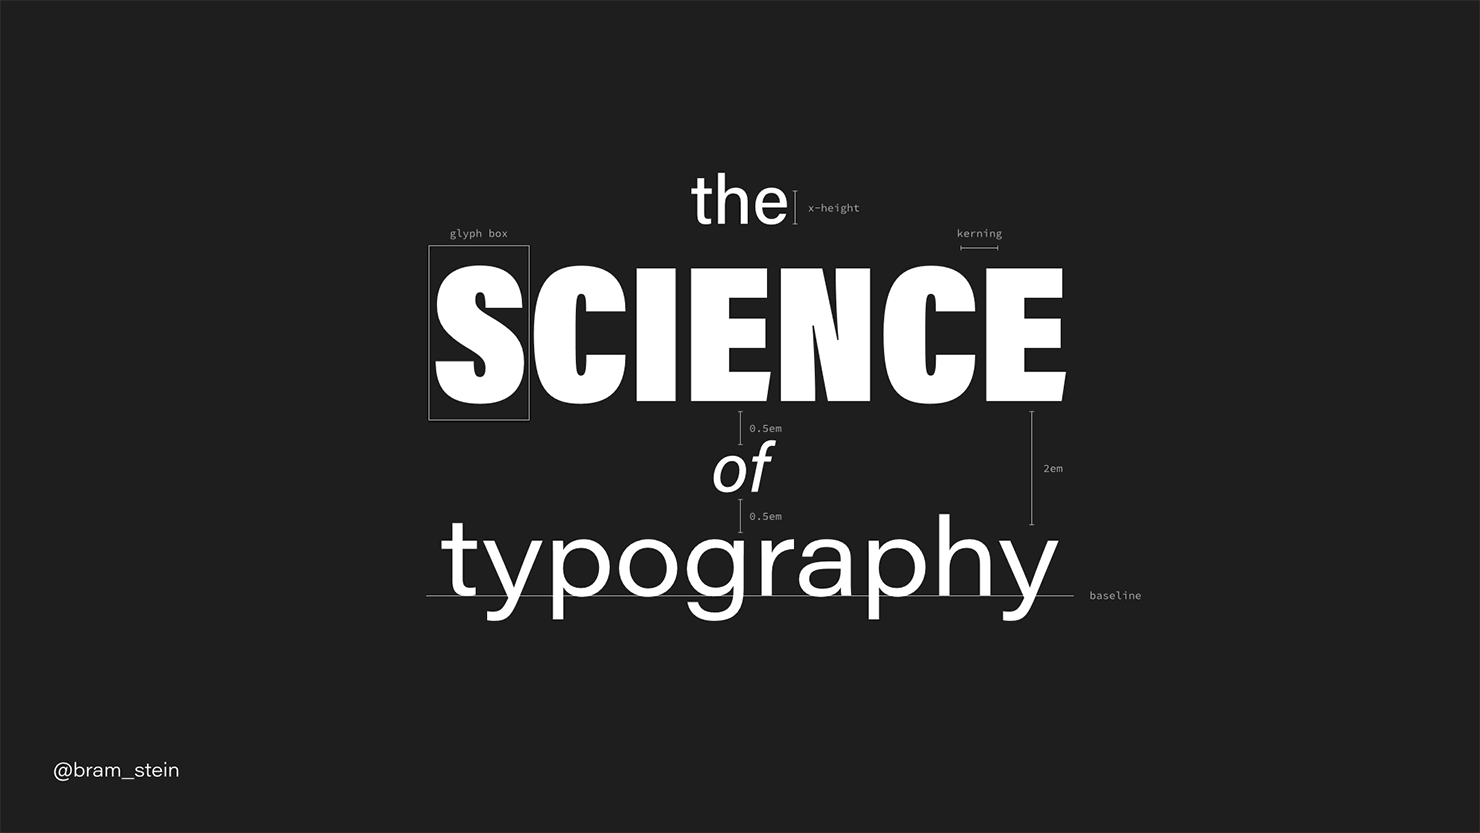 The Science of Typography opening slide